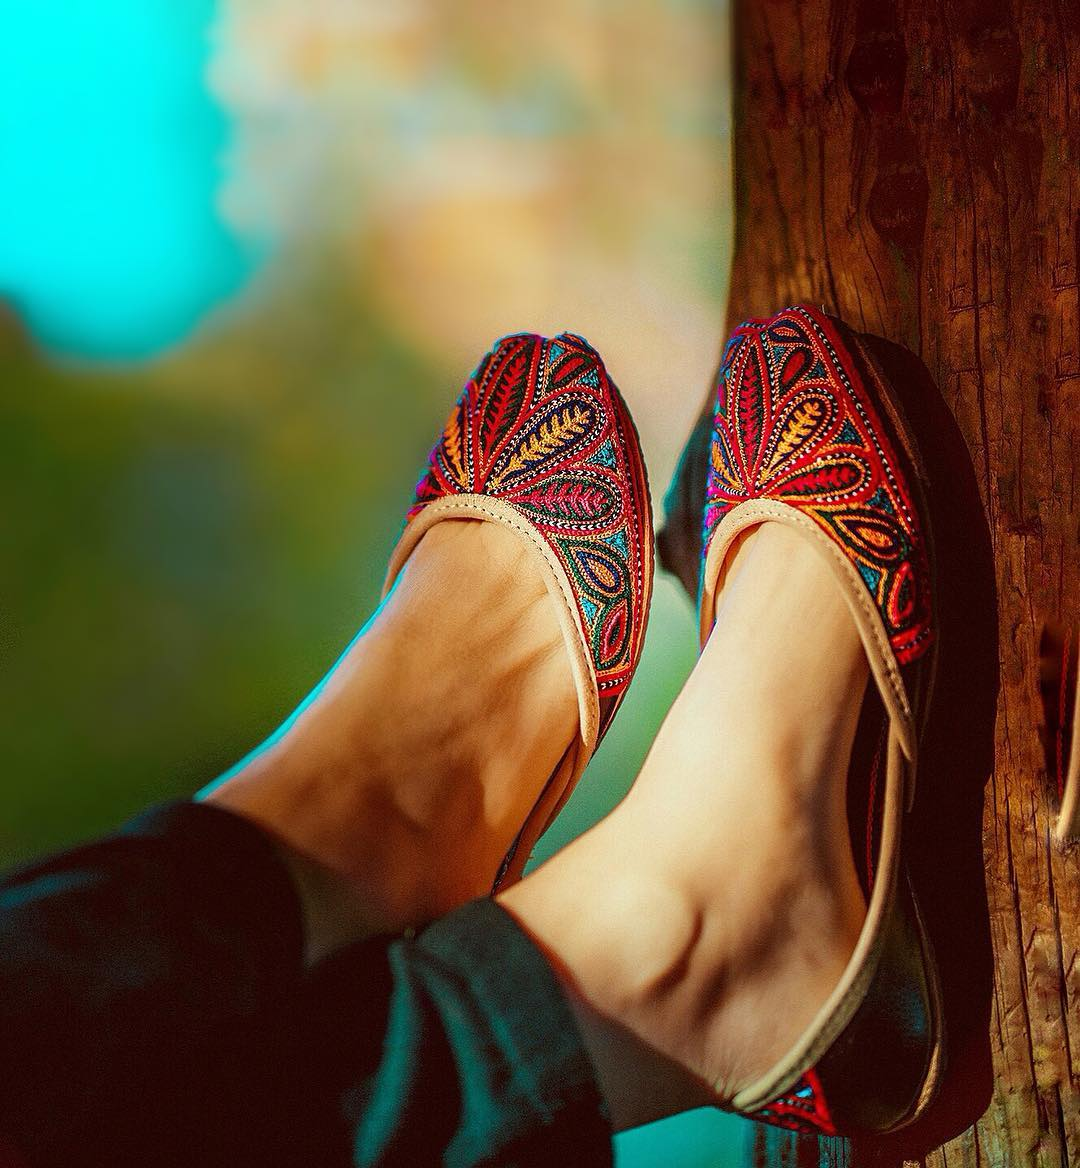 Locally based Fuchsia Shoes is known for their gorgeous embroidered flats, which are handmade by artisans in Pakistan. (Image: Fuchsia Shoes)